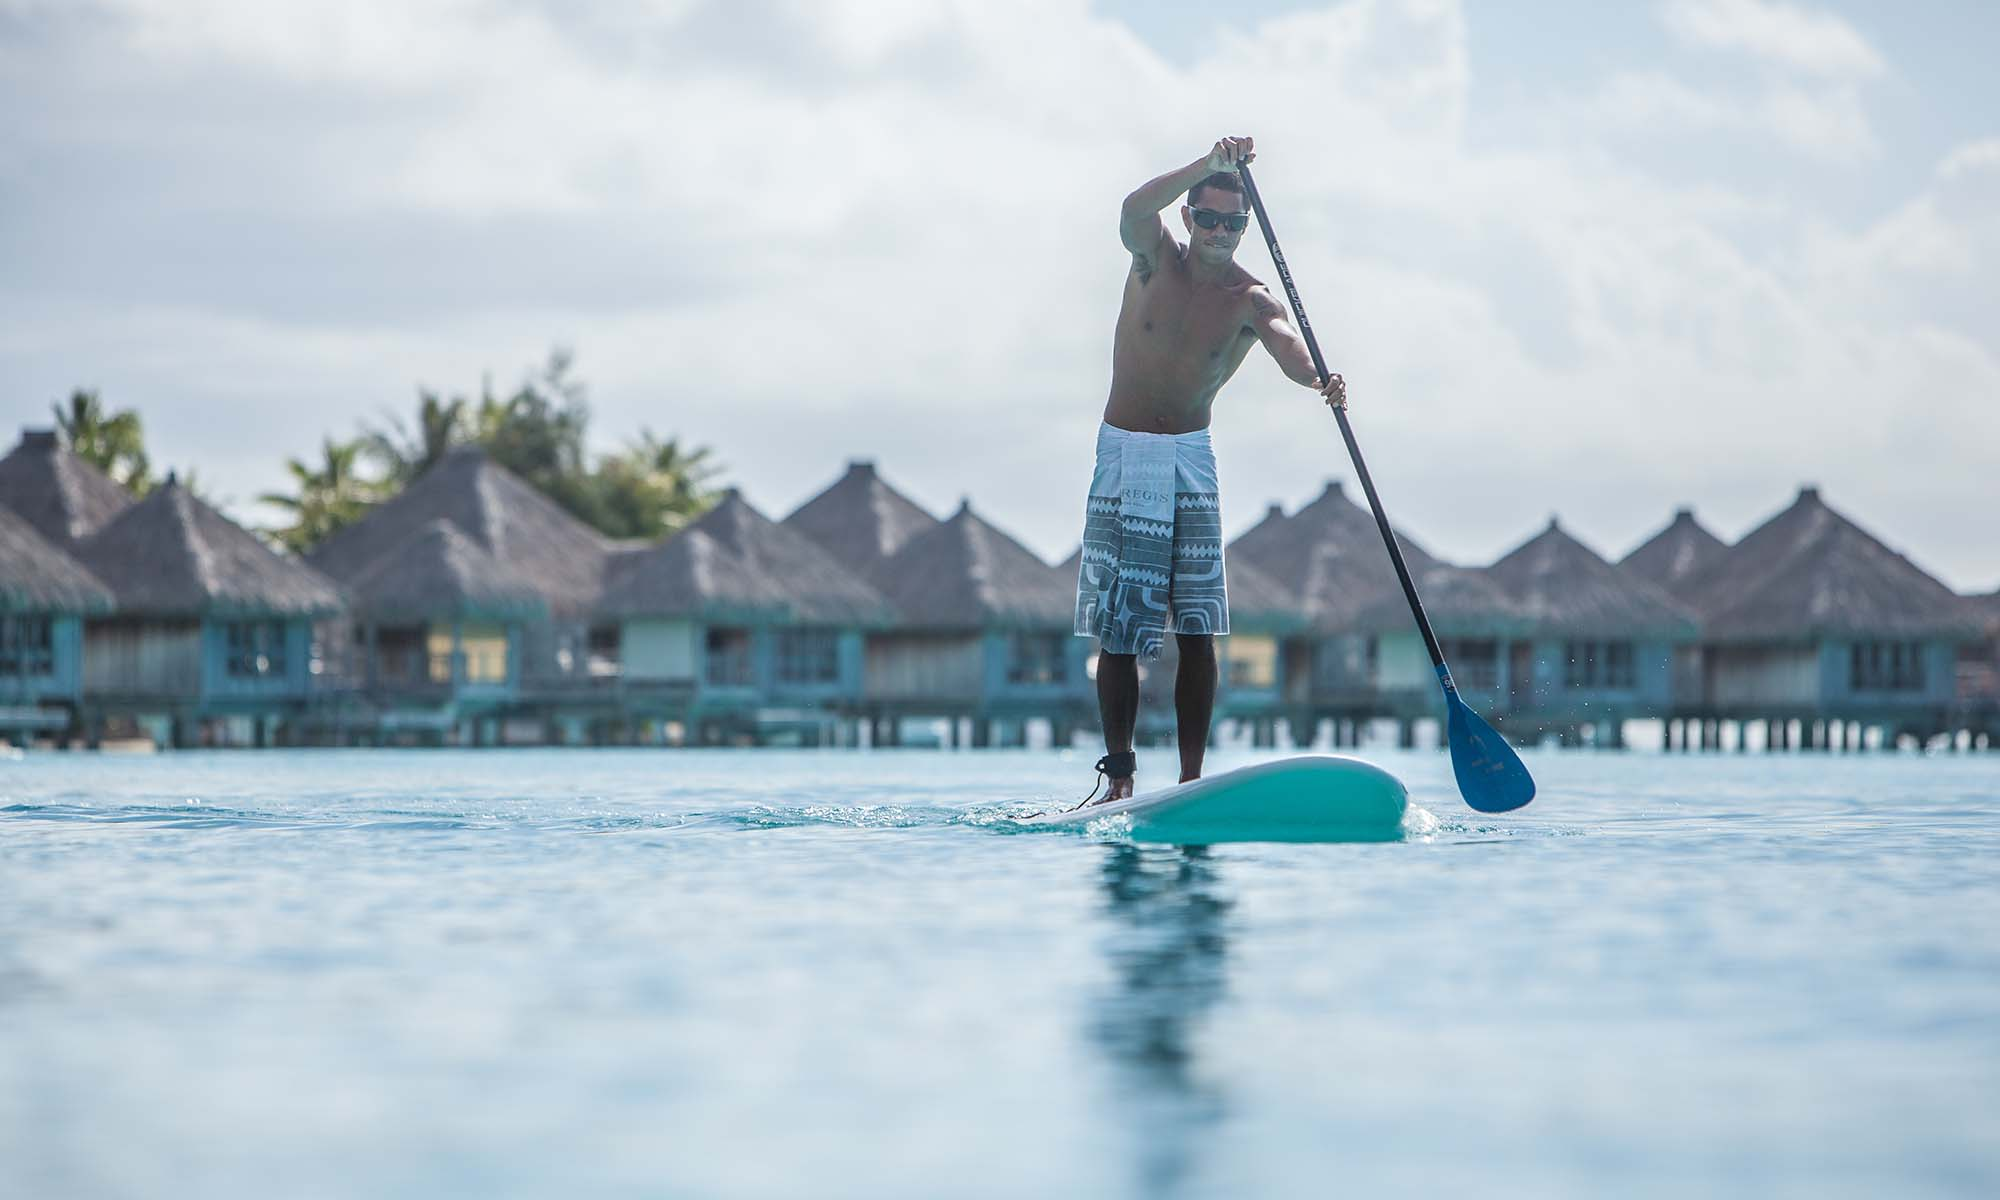 Paddleboarding at the St Regis Bora Bora Resort